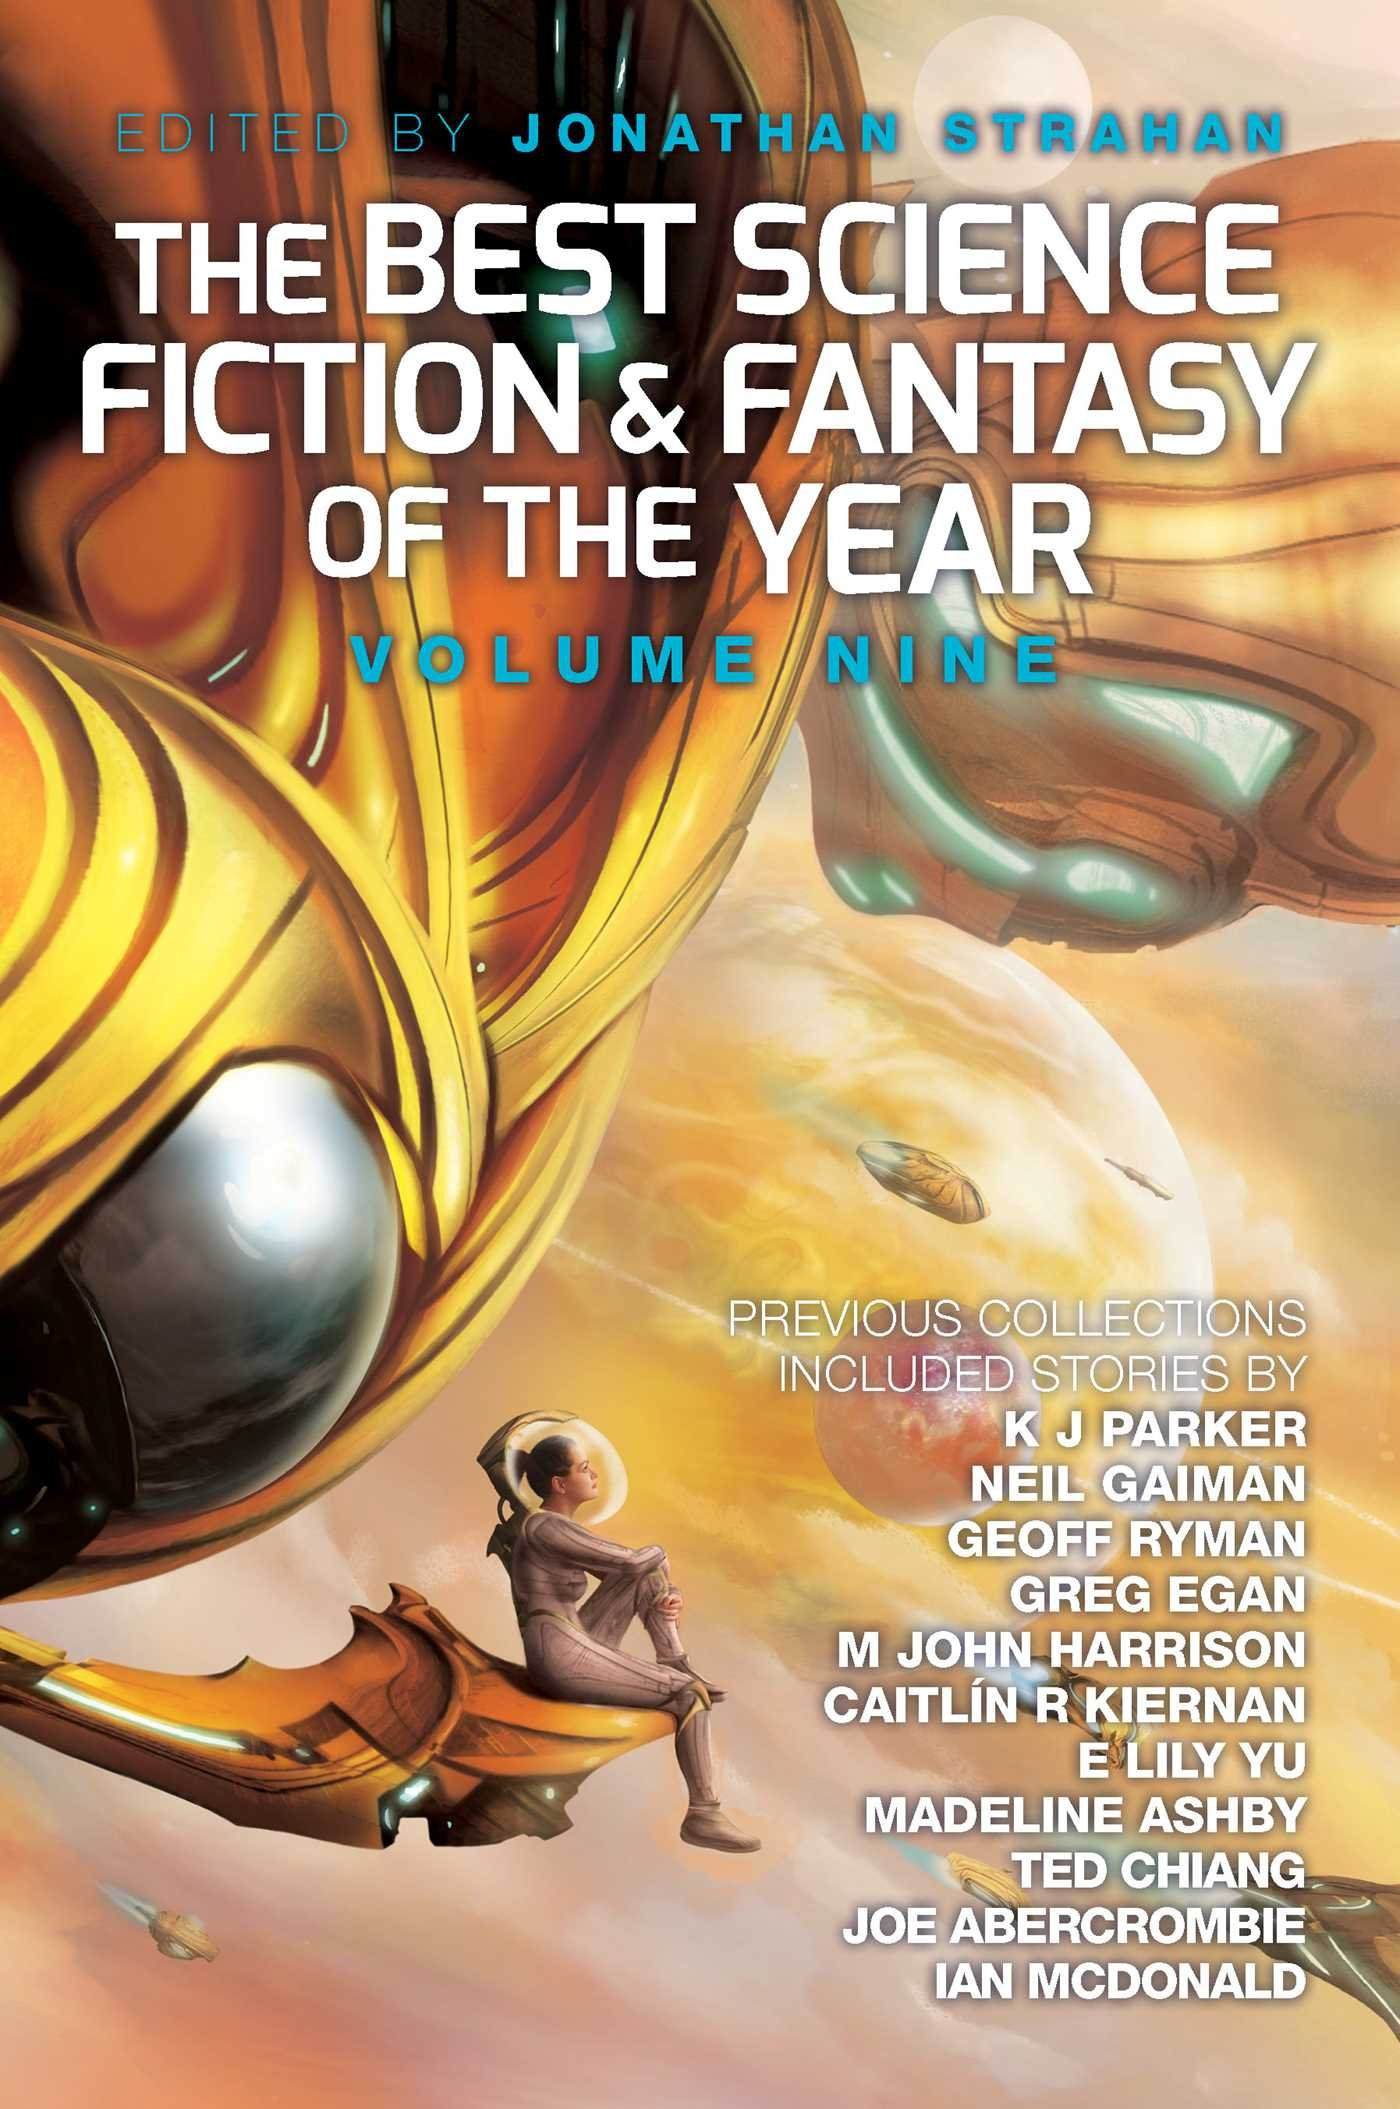 The Best Science Fiction And Fantasy Of The Year: Volume Nine (best Science  Fiction & Fantasy Of The Year): Jonathan Strahan: 9781781083093:  Amazon: